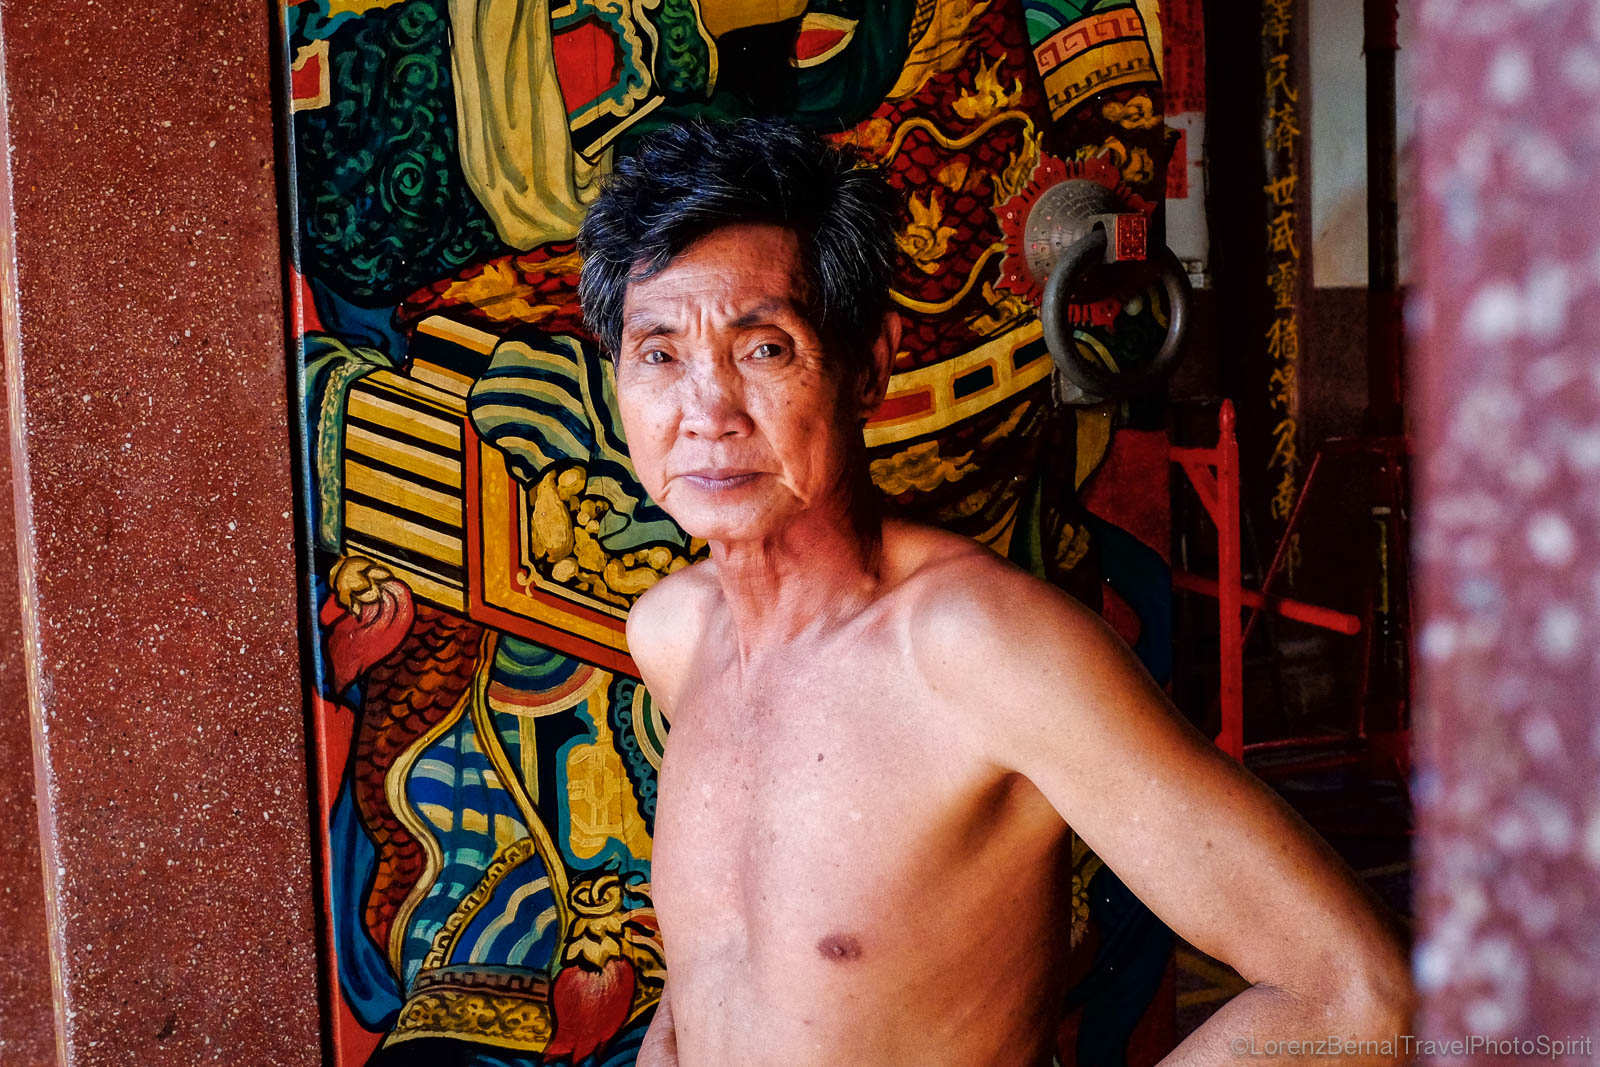 Man in front of the entrance door of Chinese Temple, in Phnom Penh, Cambodia